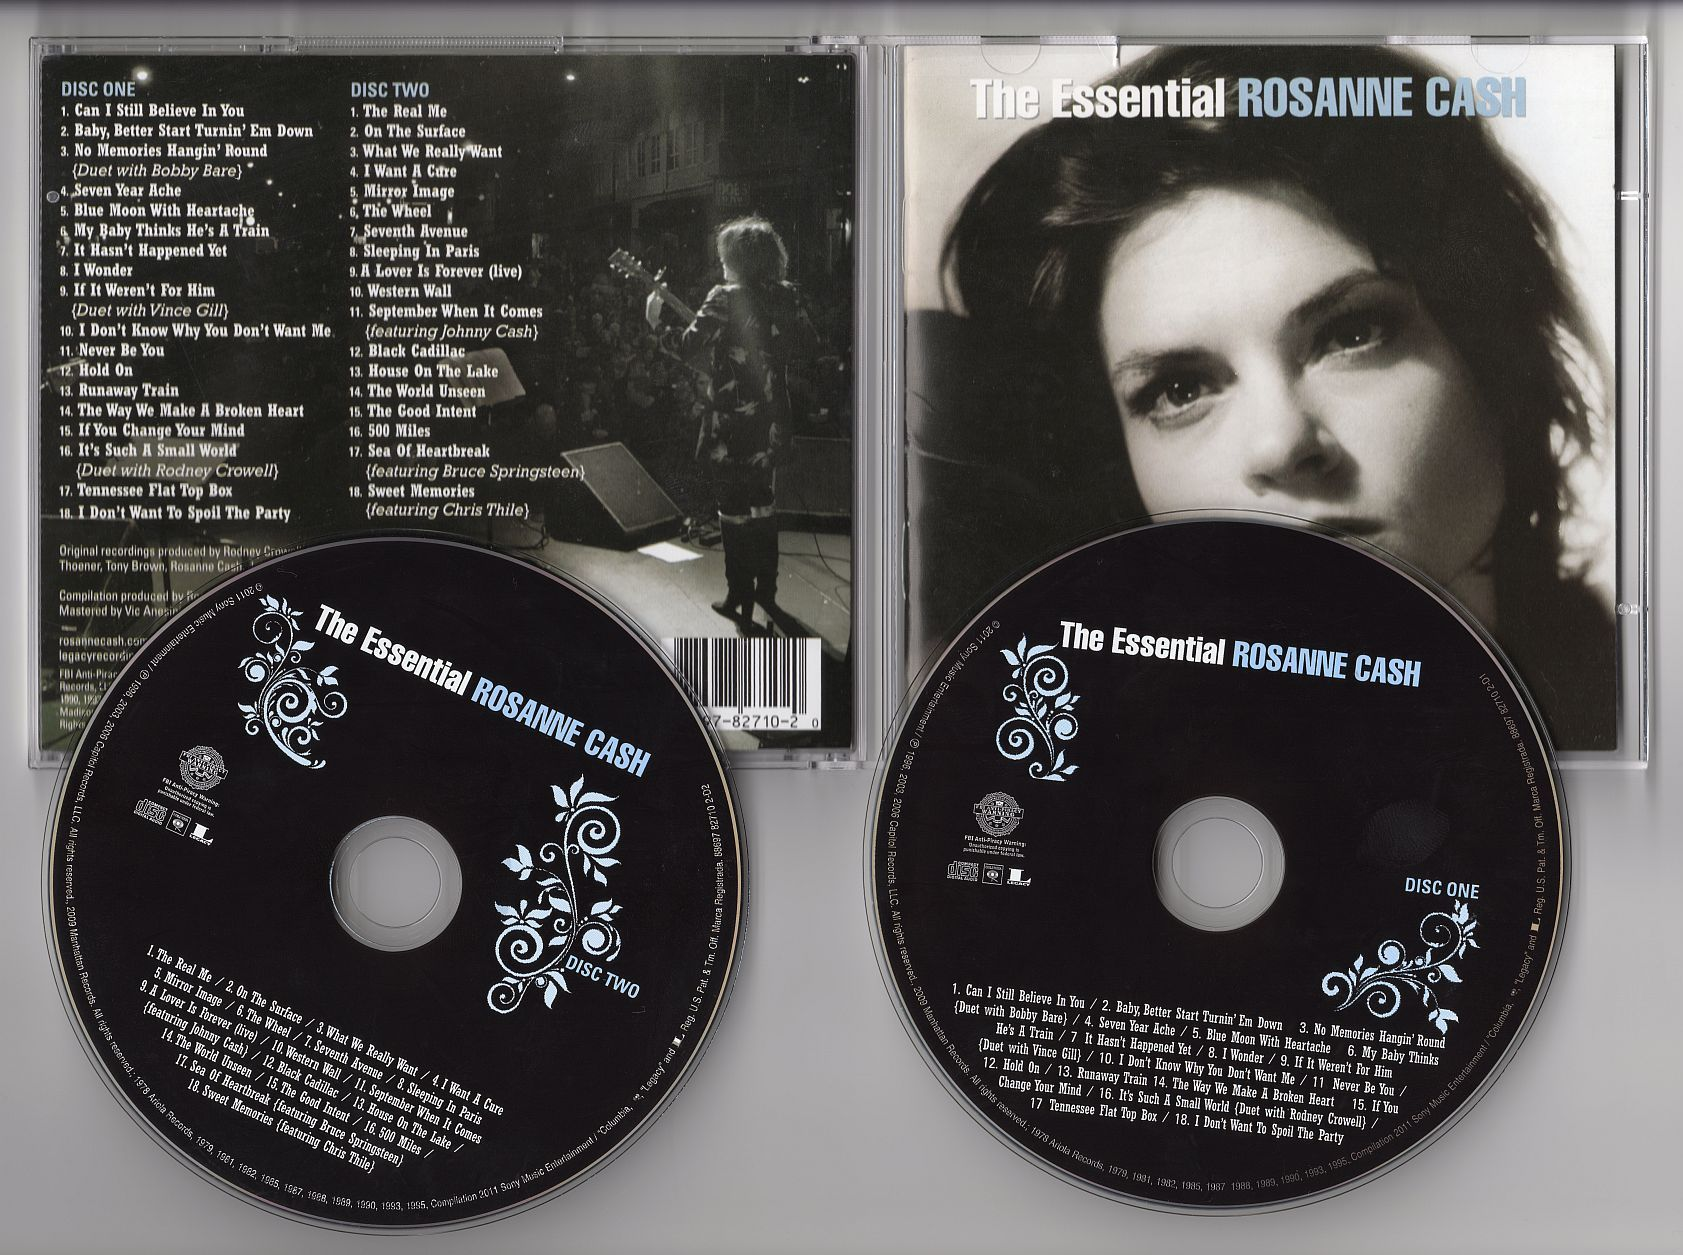 Rosanne Cash - The Essential Rosanne Cash 2CD 2011 (CD ORIGINAL) EXCLUSIV